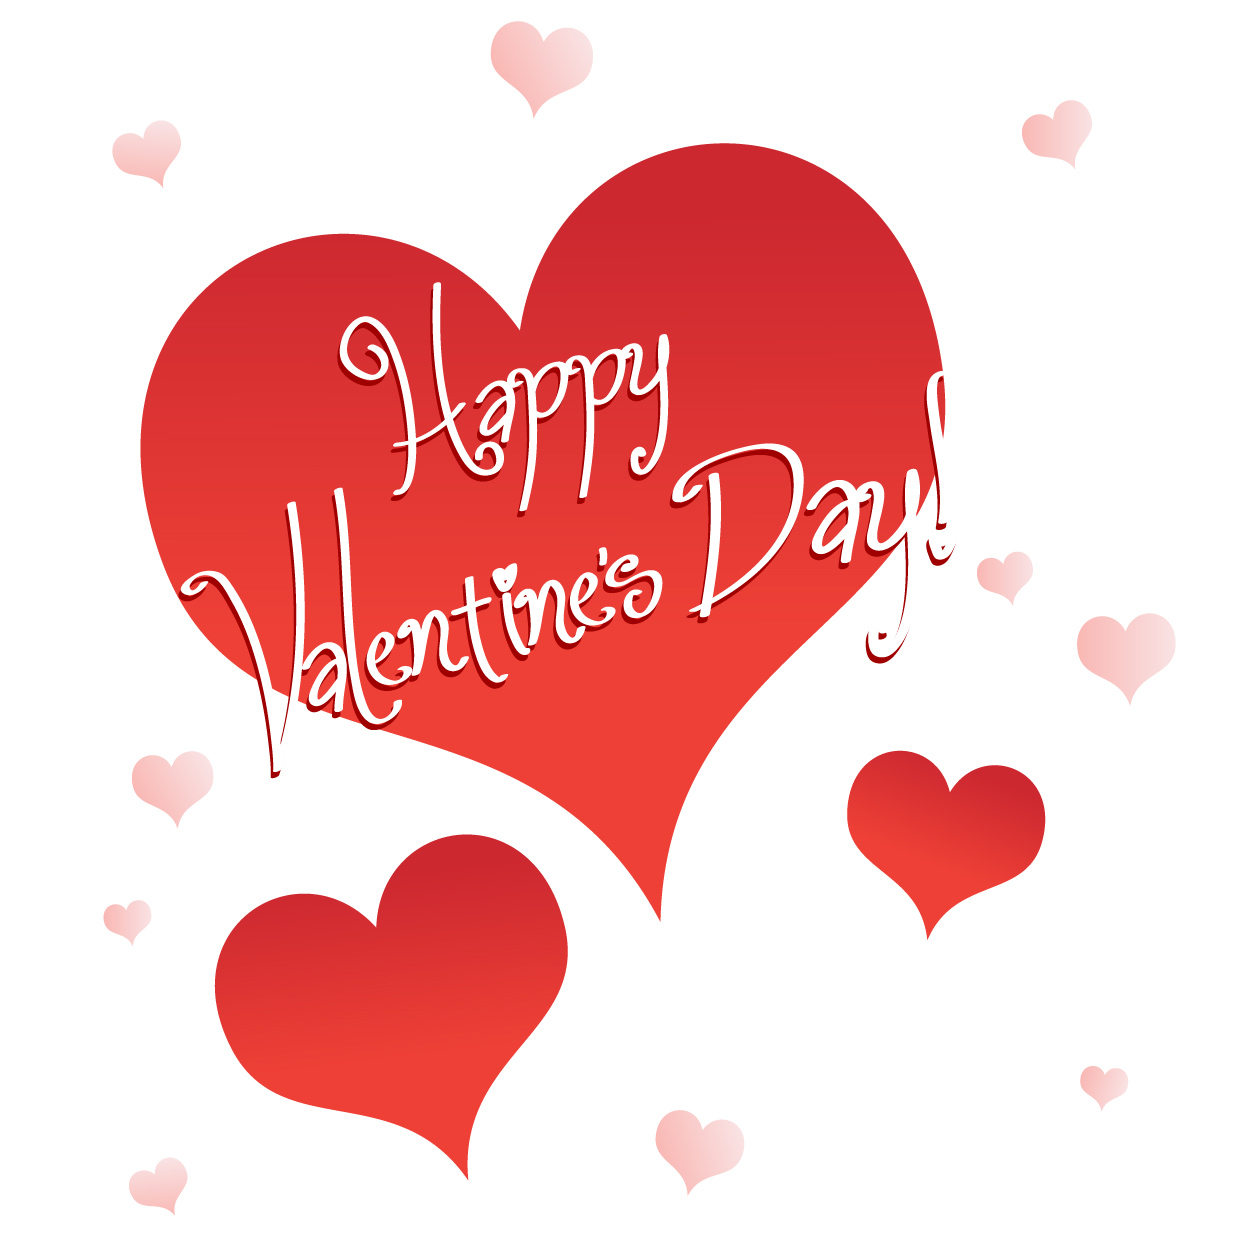 Happy valentines day clip art .-Happy valentines day clip art .-4